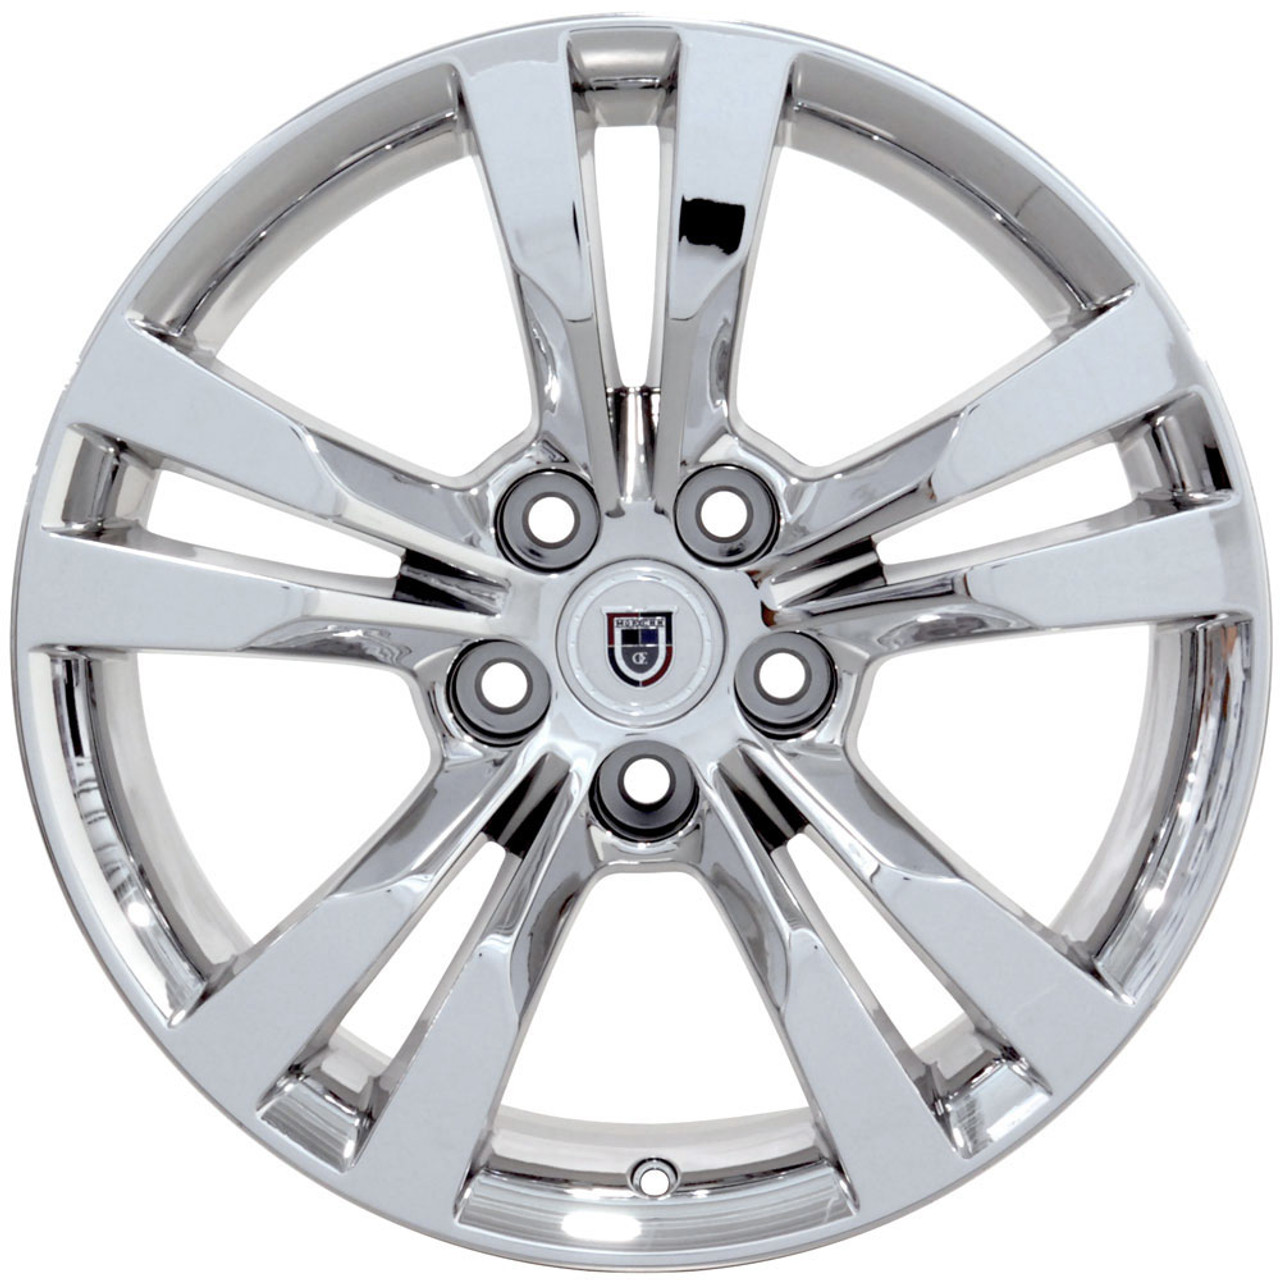 pin rims v avantgarde cts coupe silver fits garde avant cadillac wheels concave